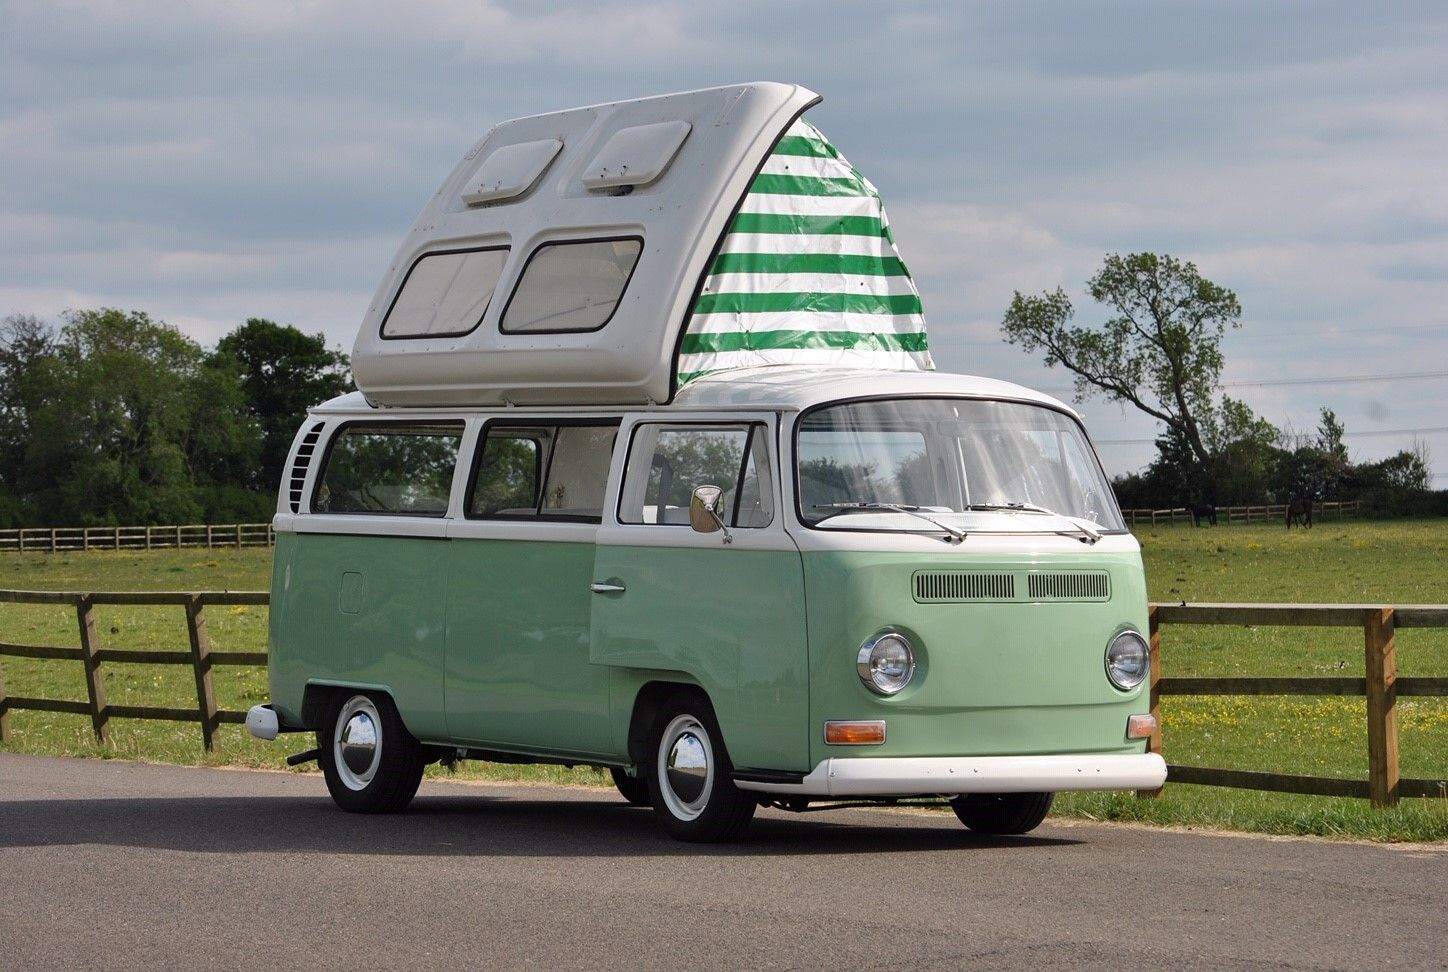 A VW T2 Classic Campervan called GreenGilbert and Exterior for hire in leighton buzzard, Bedfordshire